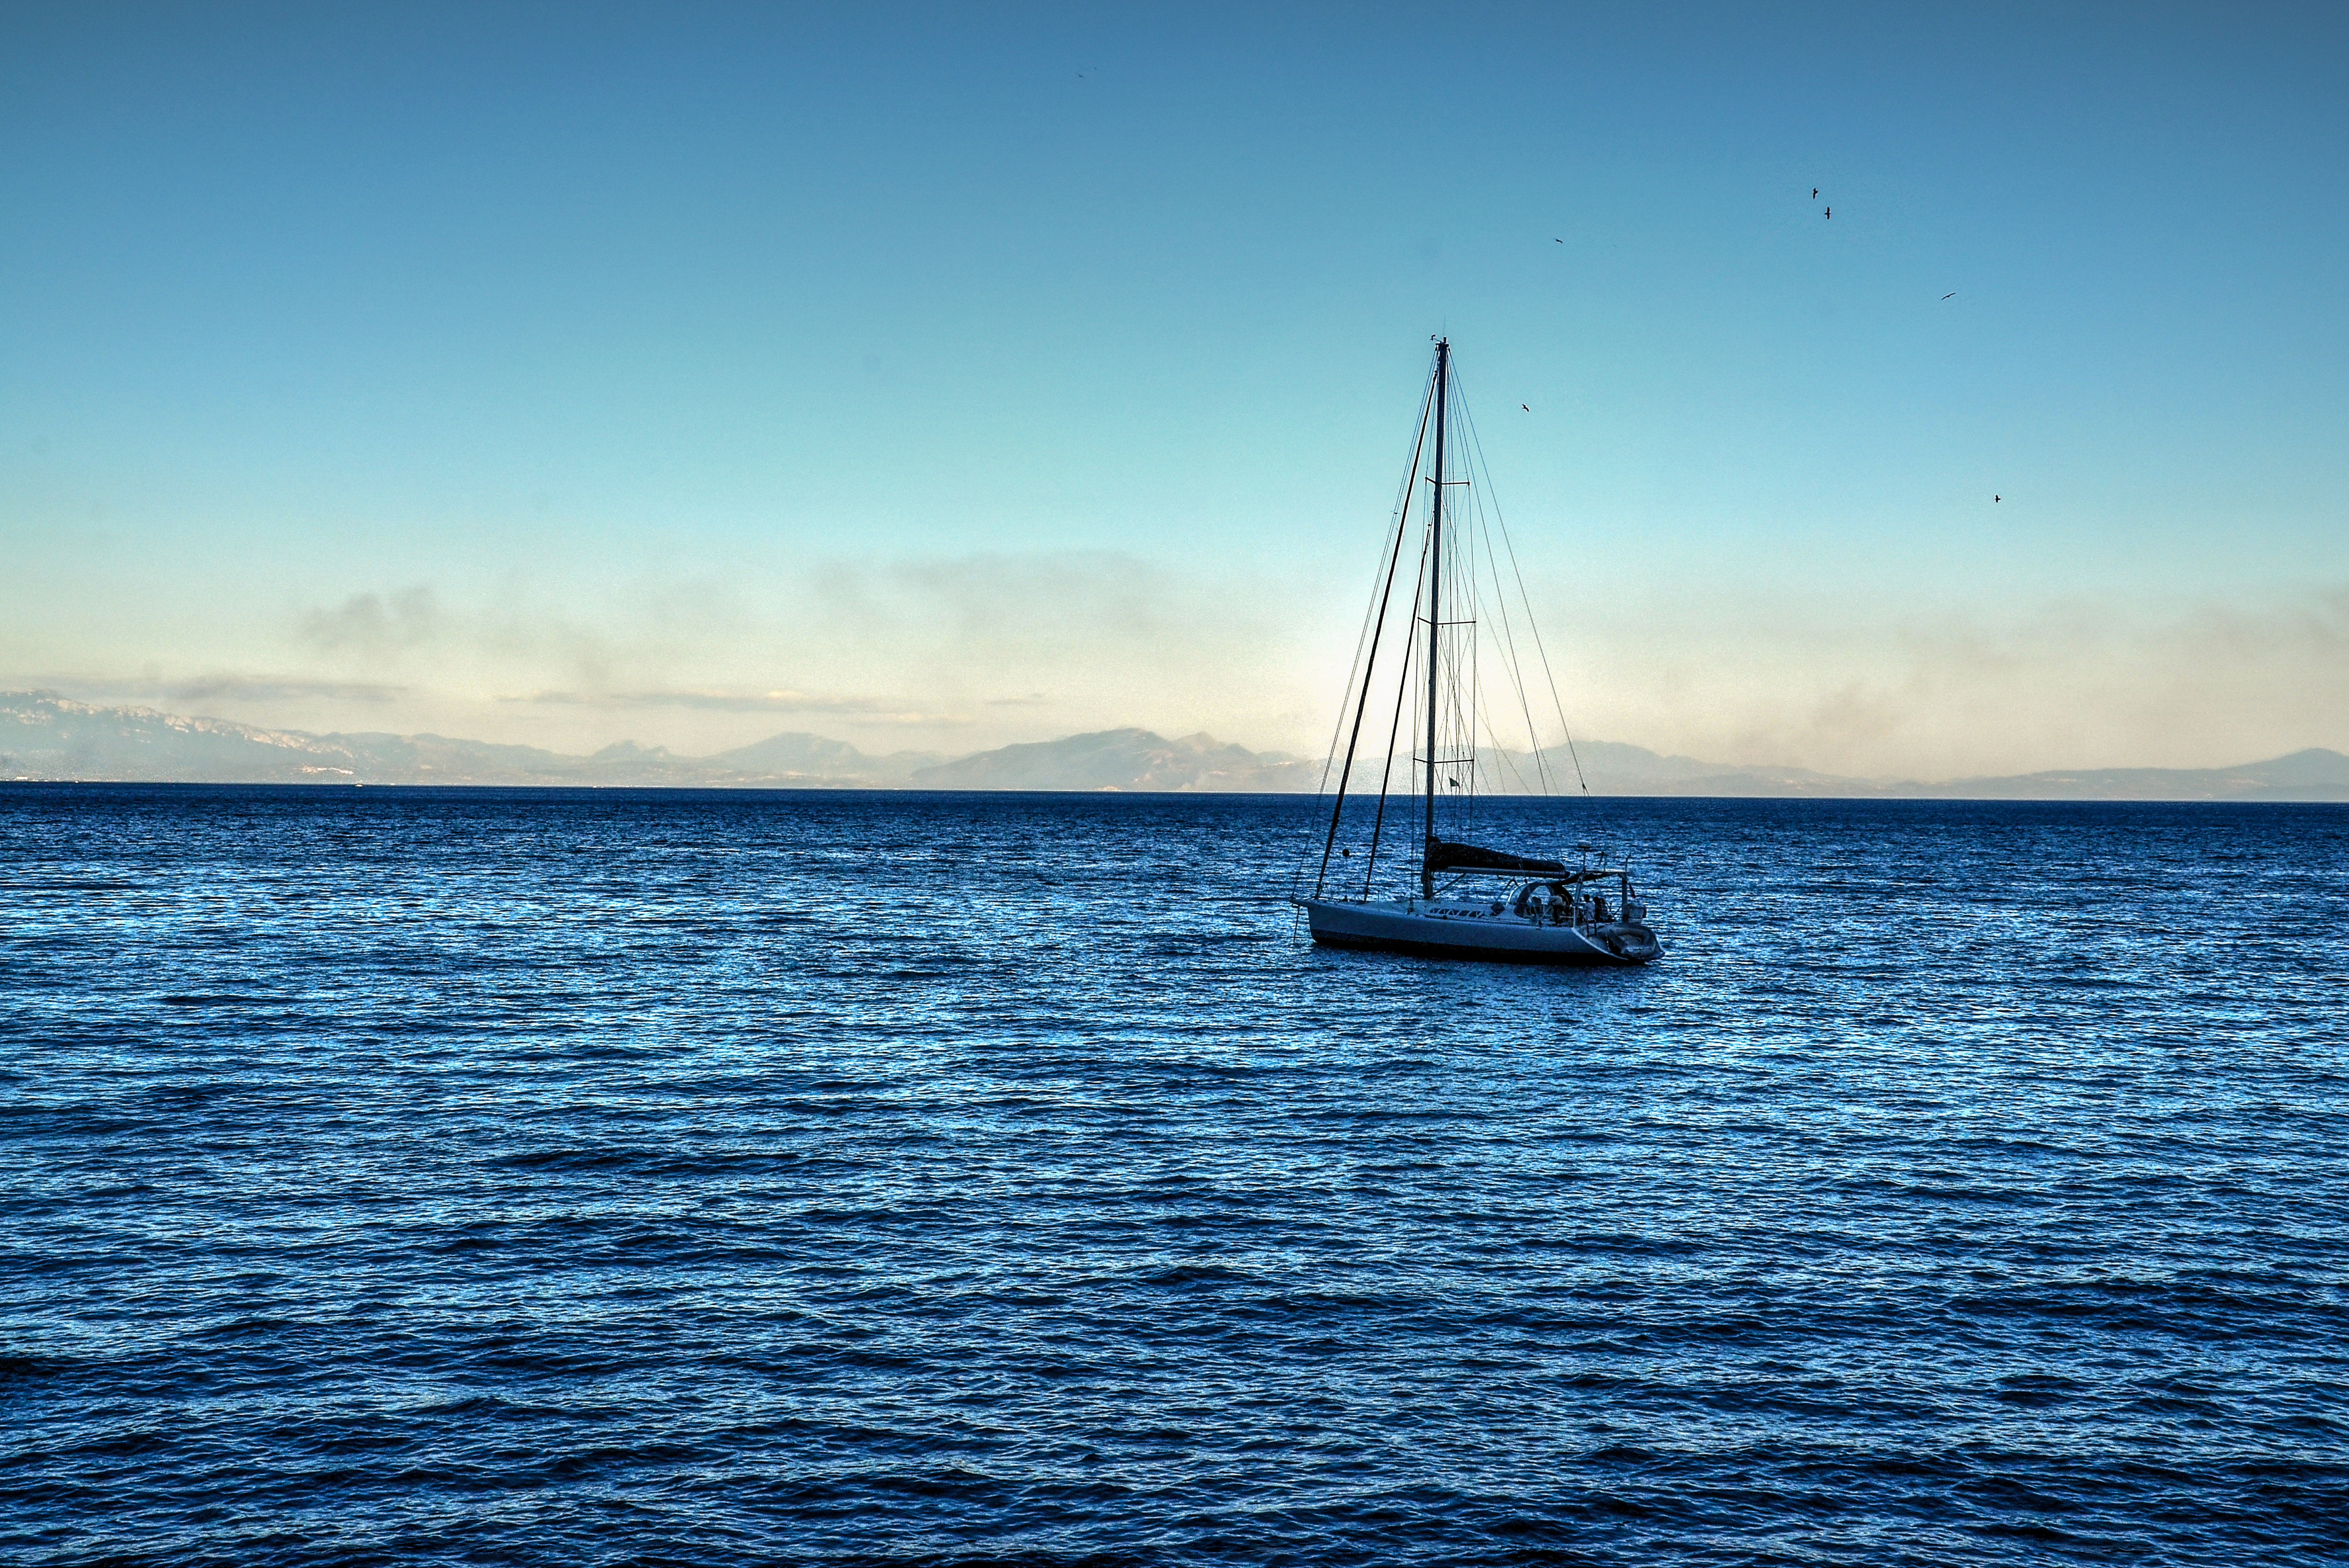 White sailing boat on bodies of water photo